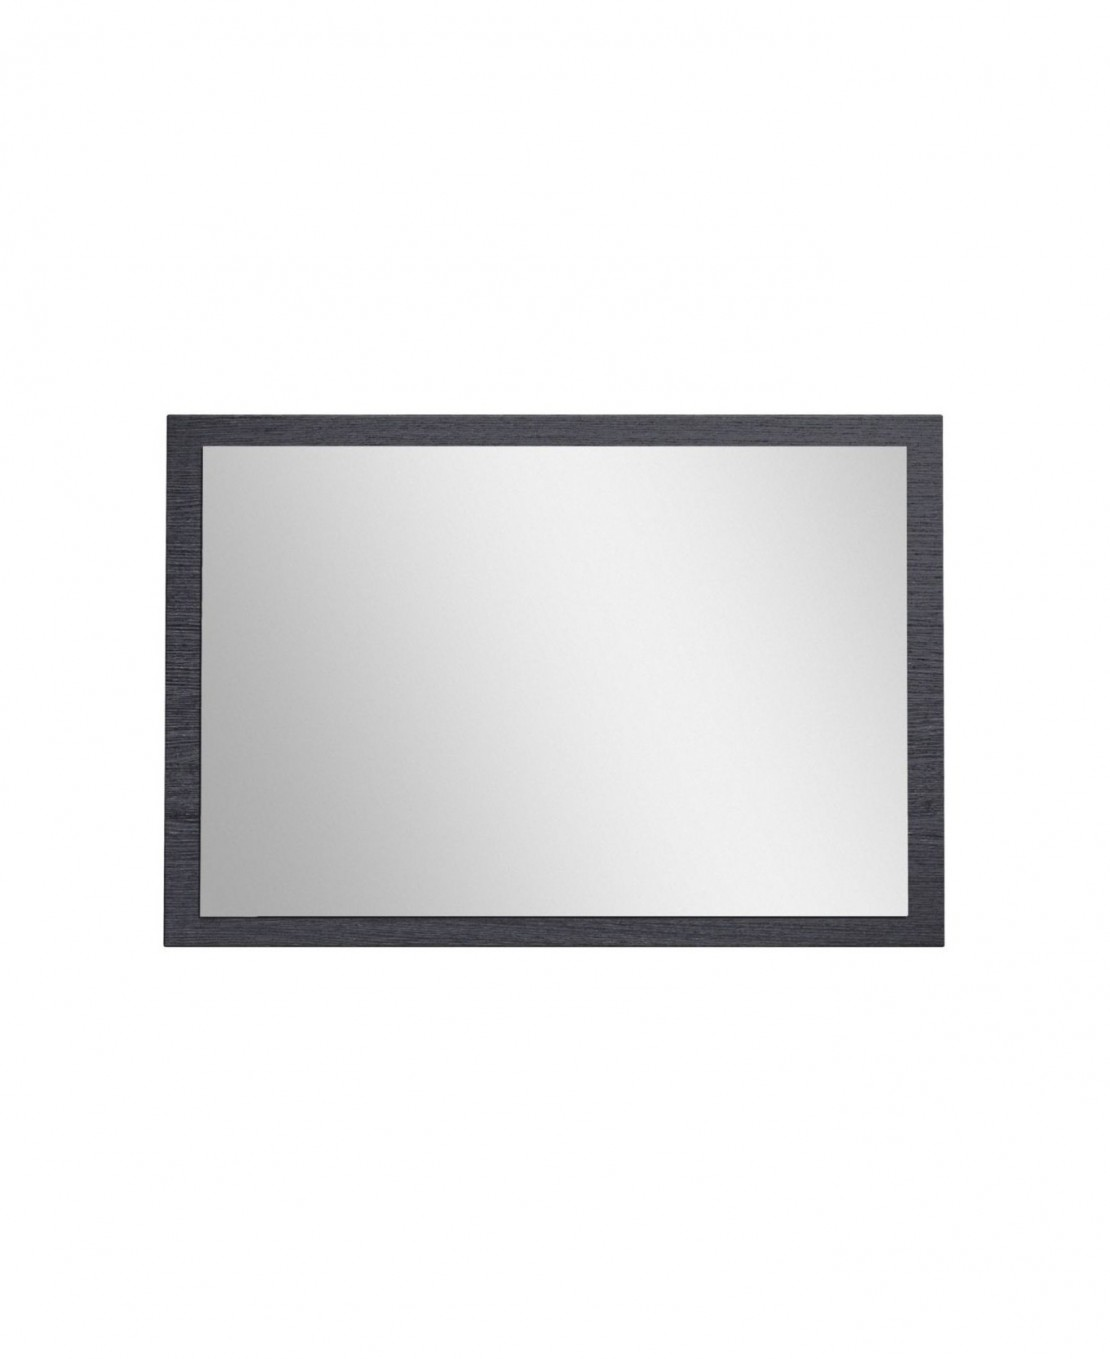 /_images/product-photos/kt-furniture-geo-mirror-matt-grey-with-black-oak-carcase-a.jpg